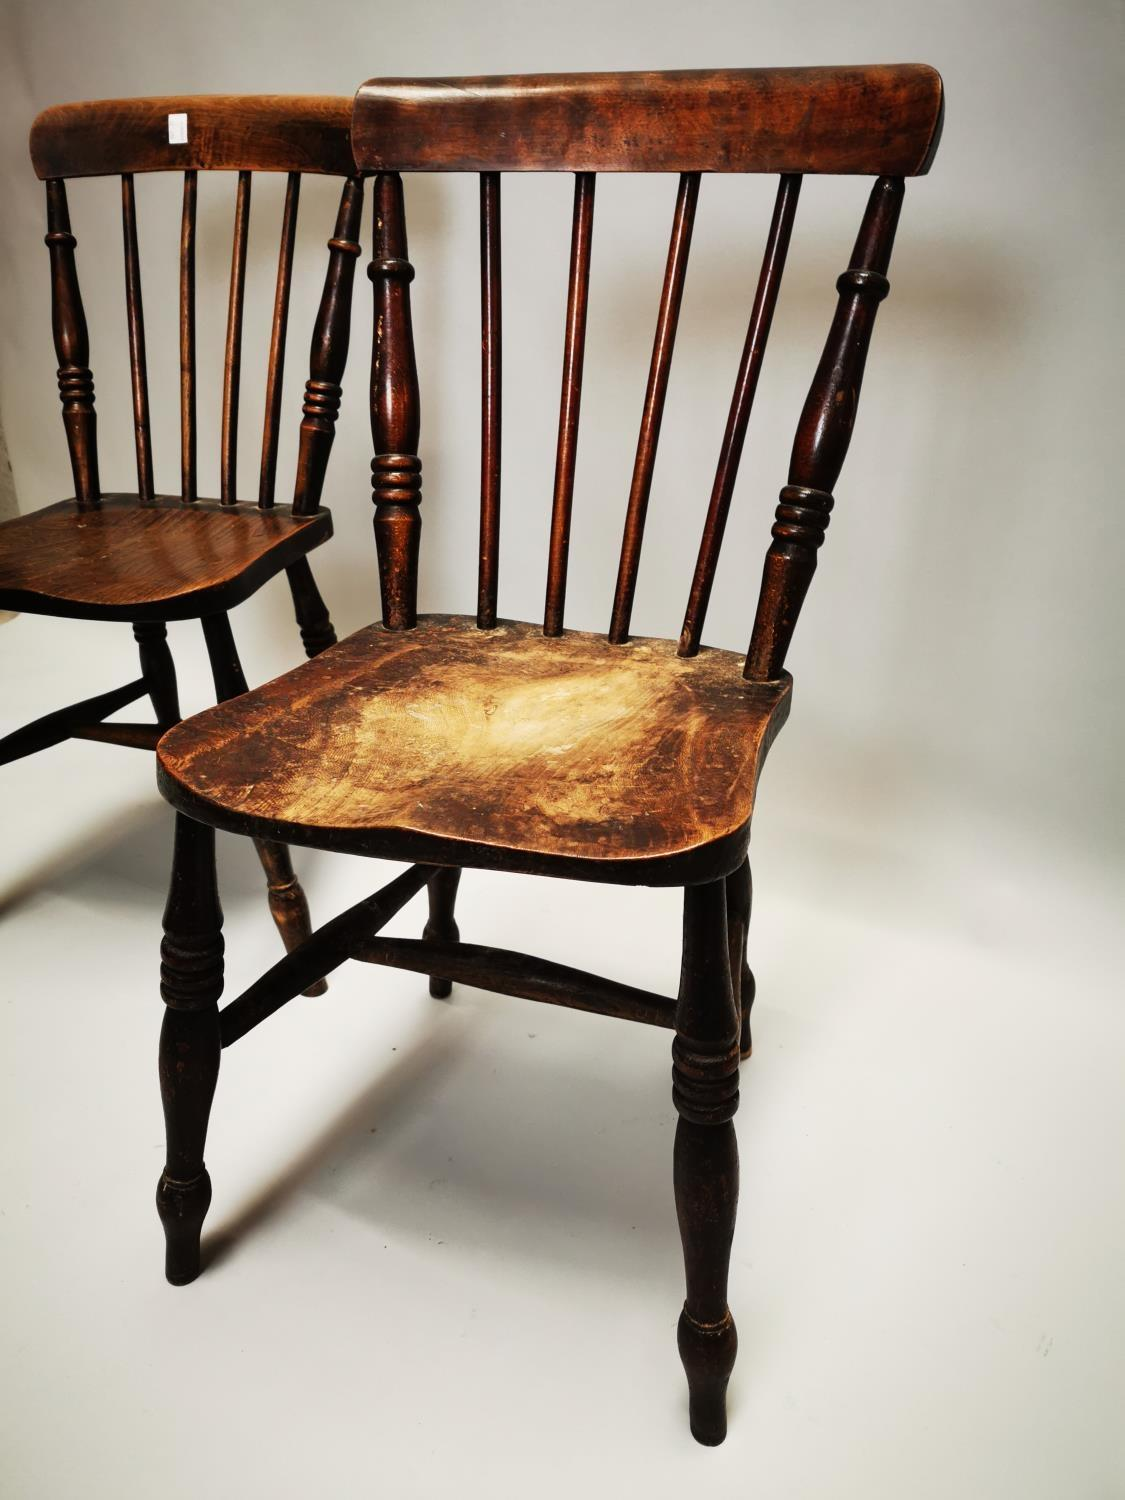 Pair of 19th C. pine and elm kitchen chairs - Image 5 of 8